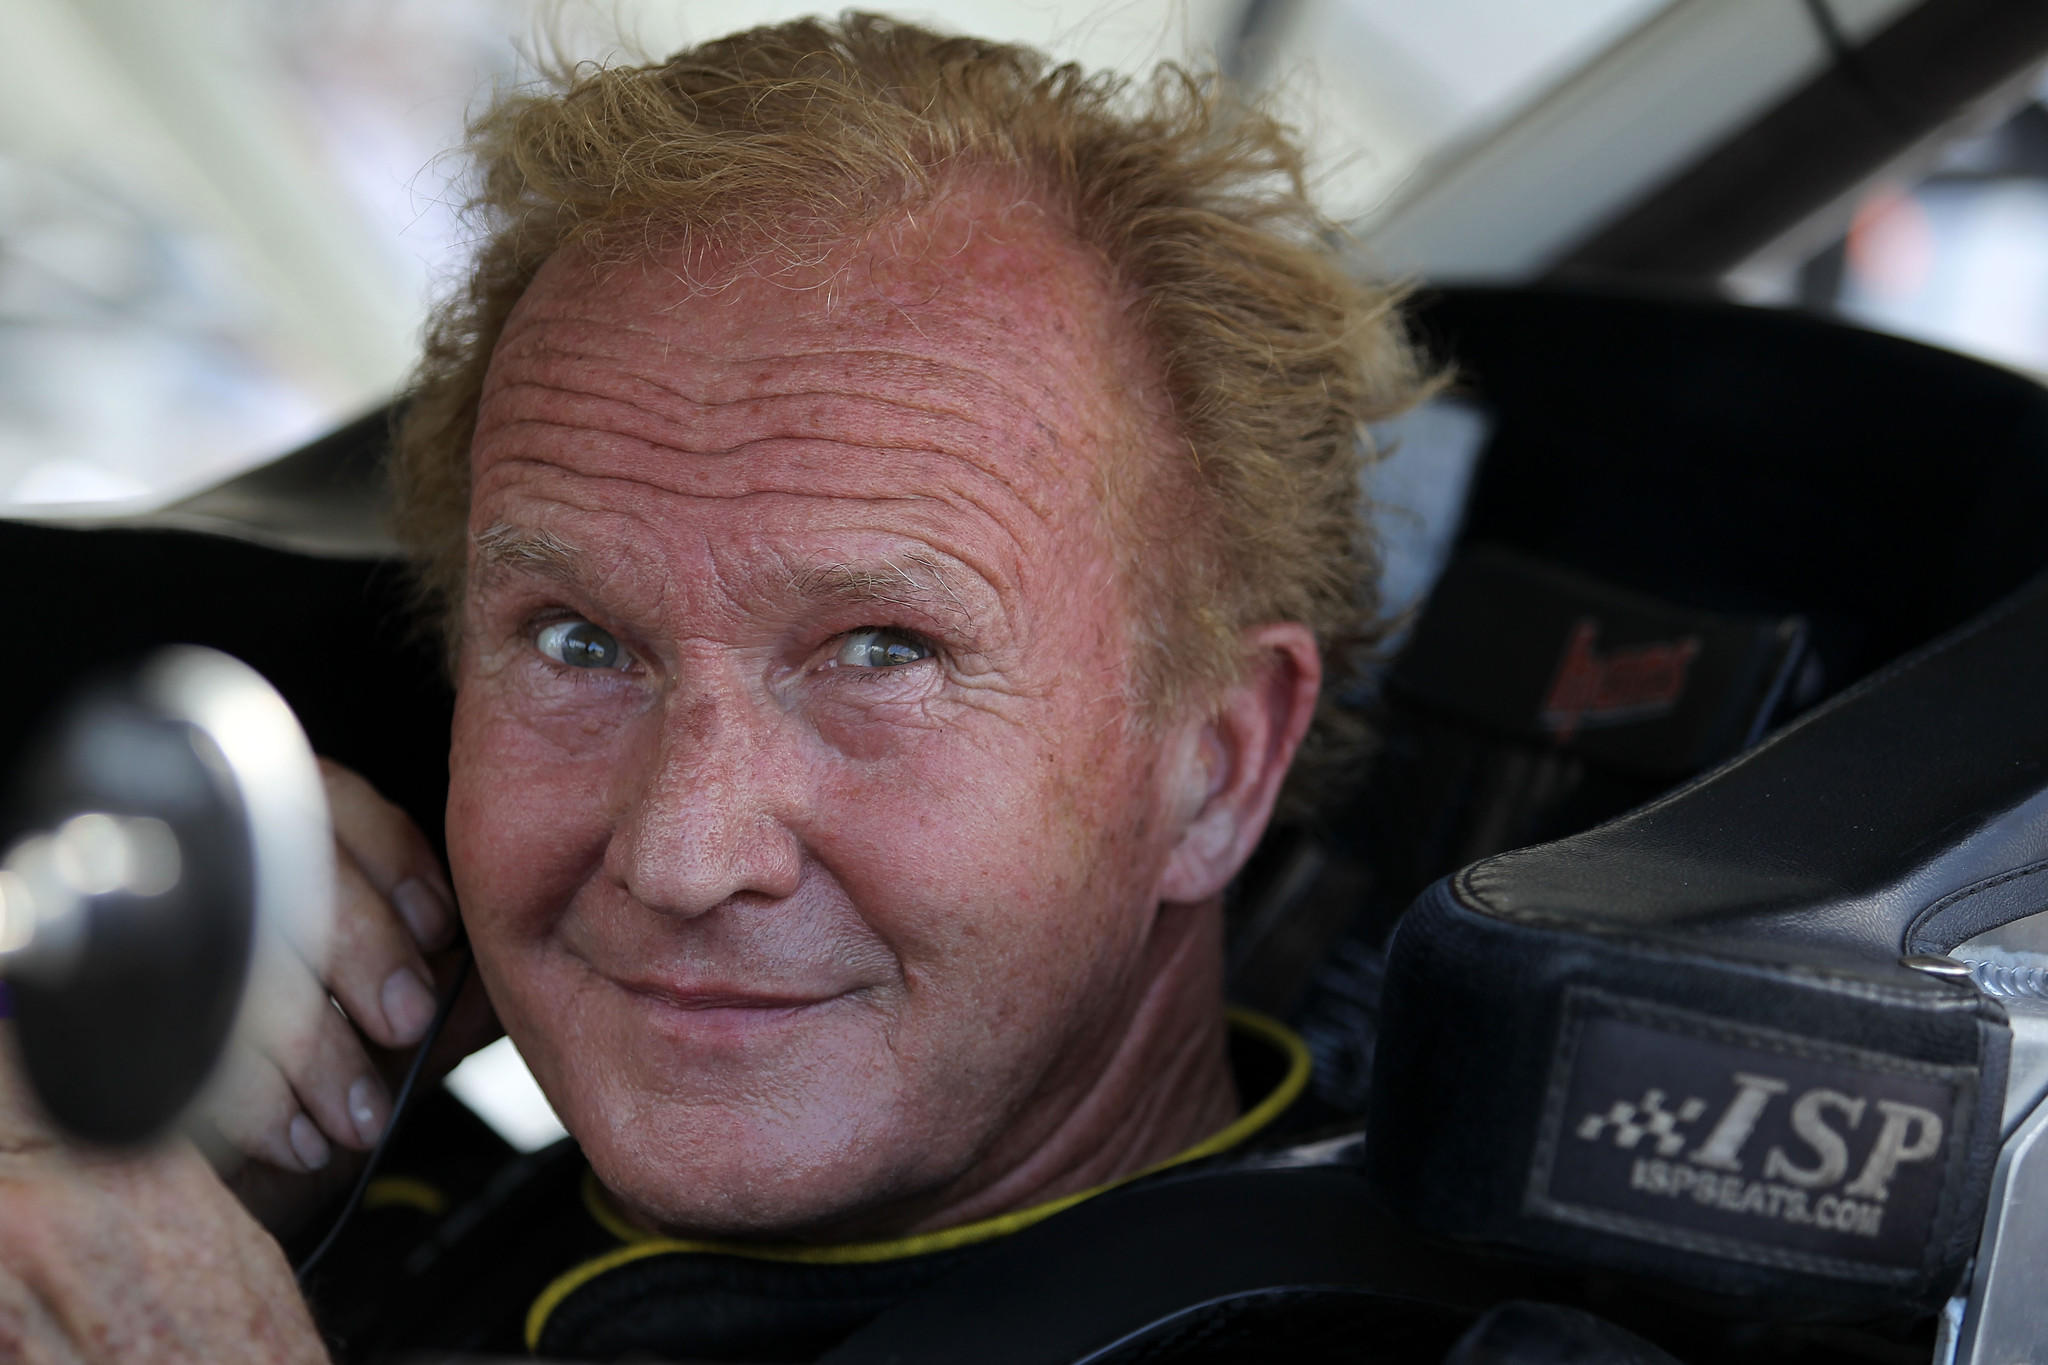 Morgan Shepherd, driver of the #89 Racing with Jesus Dodge, sits in his car during qualifying for the NASCAR Nationwide Series Subway Firecracker 250 at Daytona International Speedway.